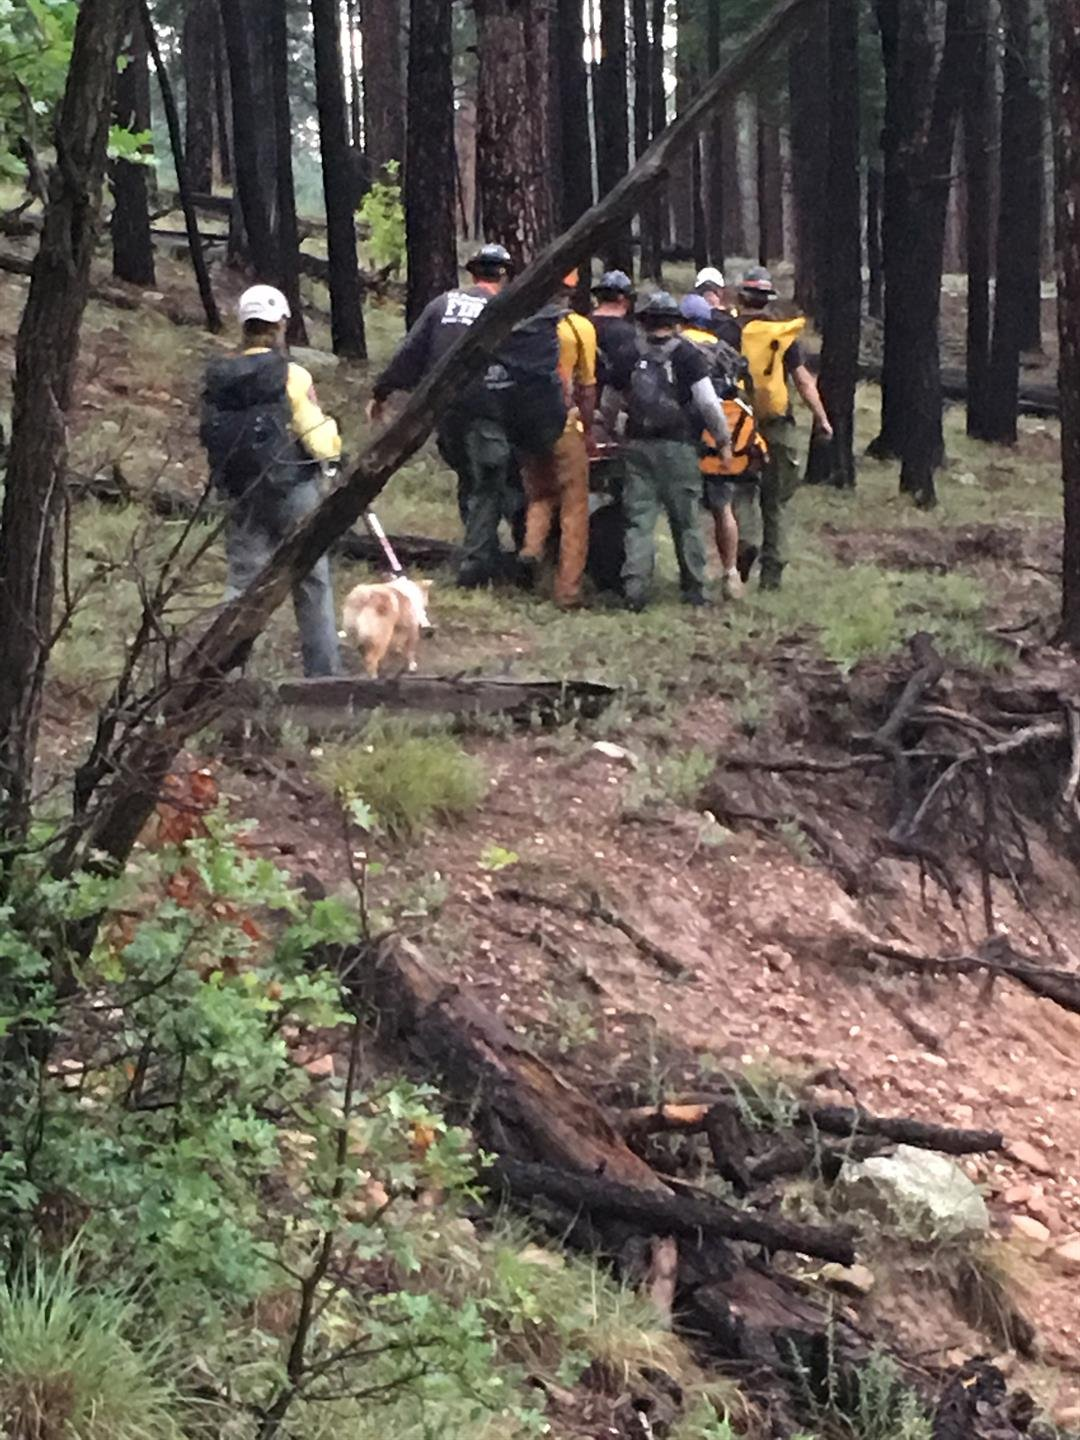 The man activated his GPS locator beacon at about 11:40 a.m. and his location was sent to the U.S. Air Force Rescue Coordination Center who then alerted the State of Arizona. (Source: Coconino County Sheriff's Office)